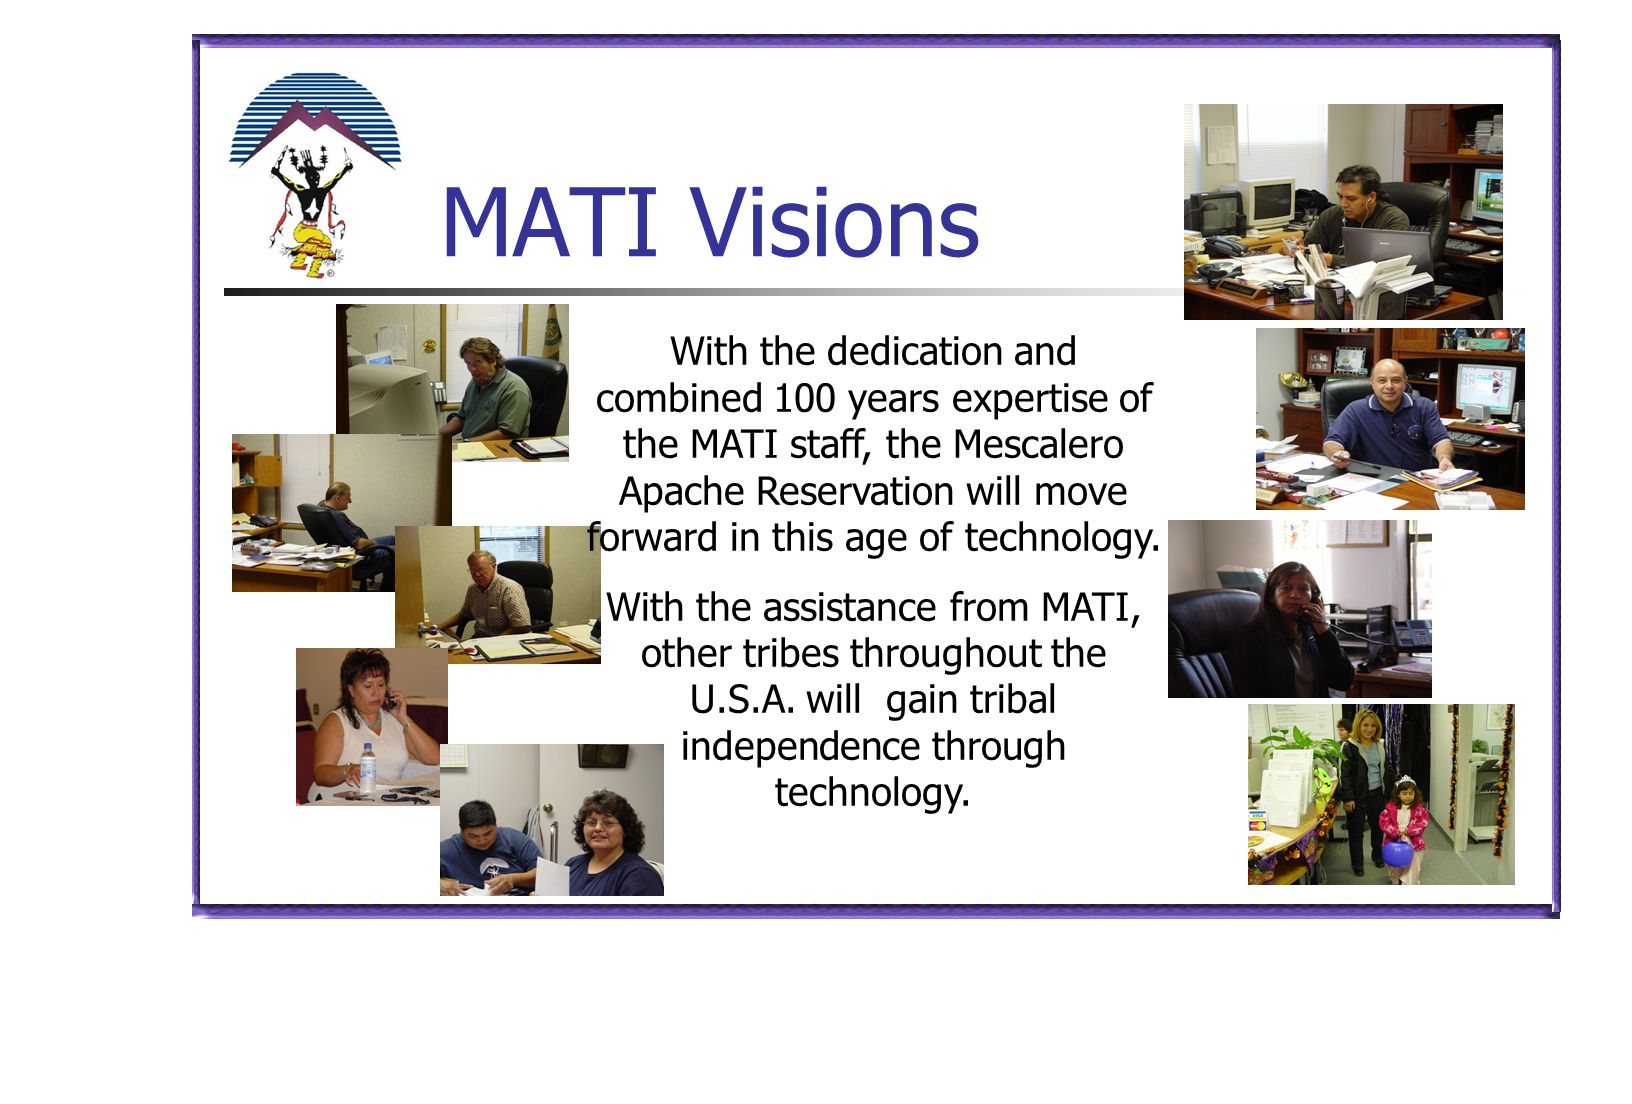 MATI Visions With the dedication and combined 100 years expertise of the MATI staff, the Mescalero Apache Reservation will move forward in this age of